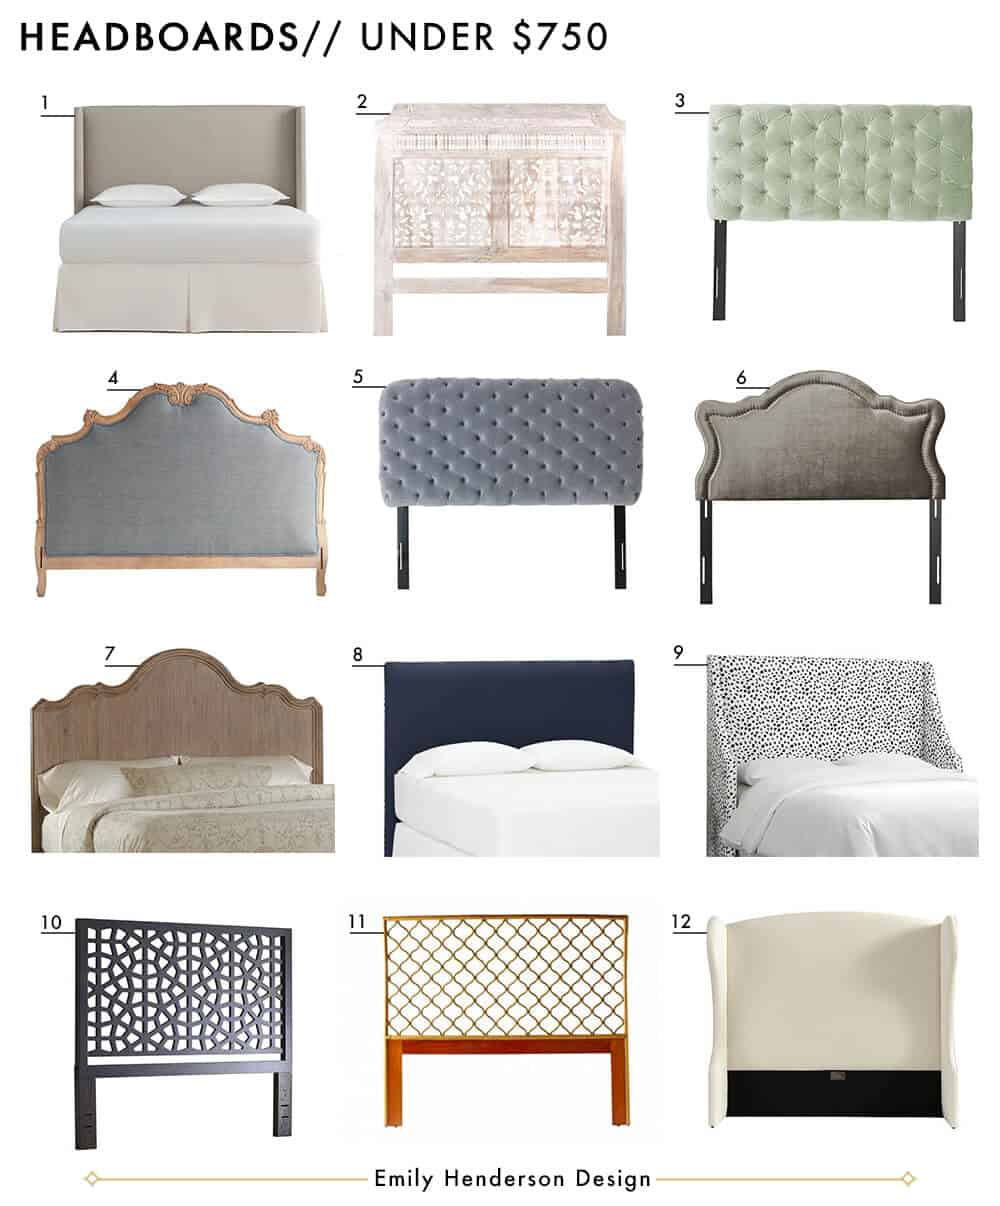 72 Affordable Headboards At Every Price Point